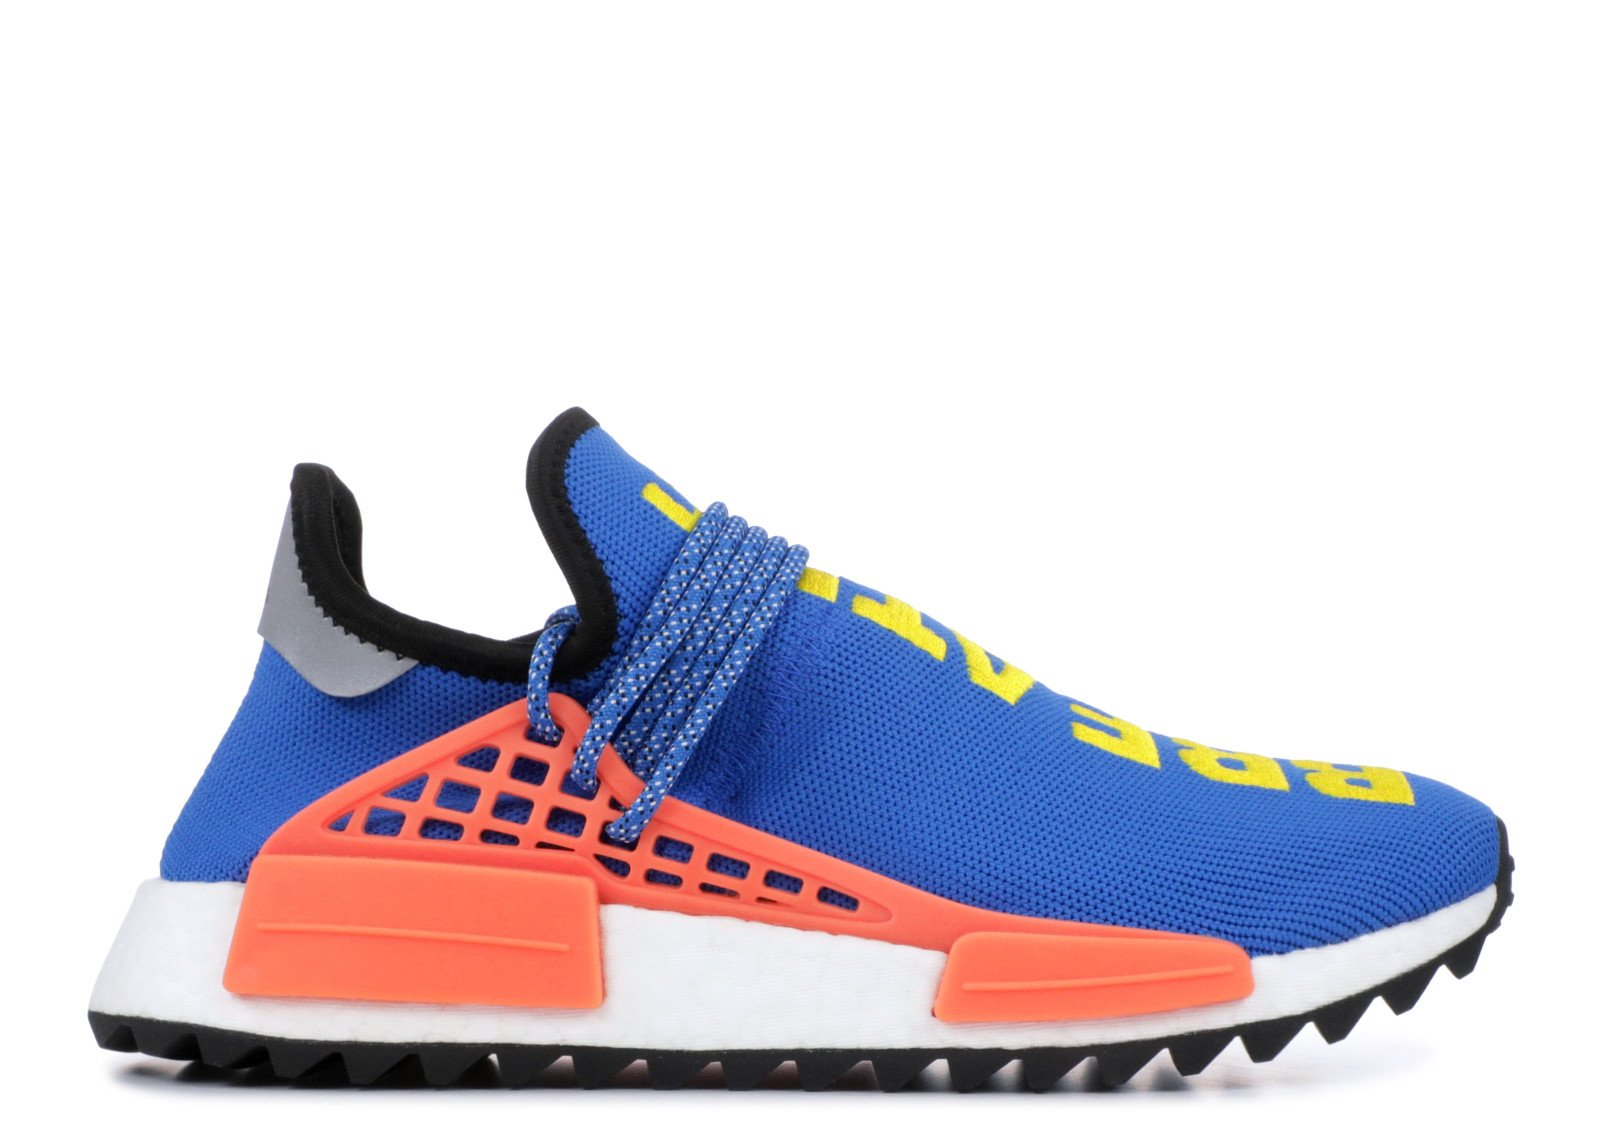 premium selection f6fcd 40216 Change the pace. Shop our latest adidas styles feat. NMD Hu ...